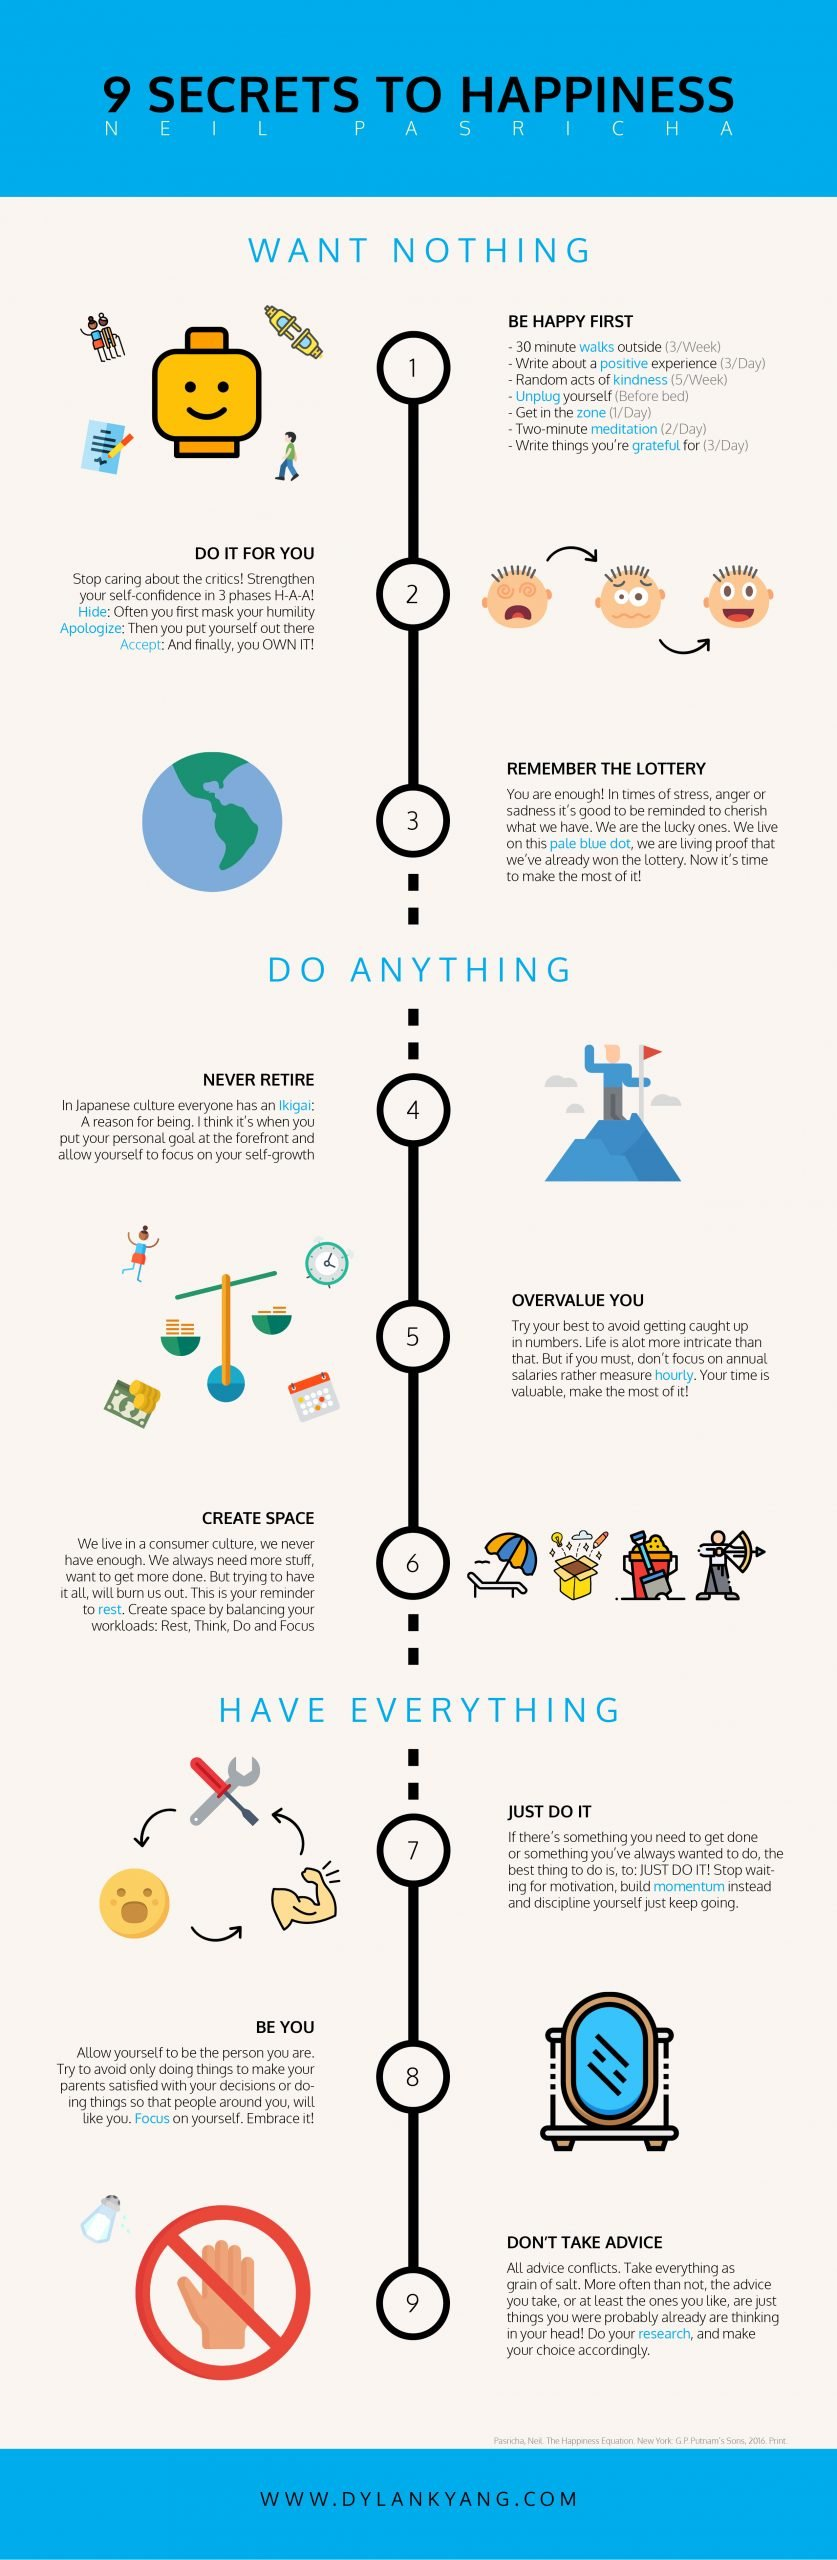 Dylankyang - The Happiness Equation - Infographic